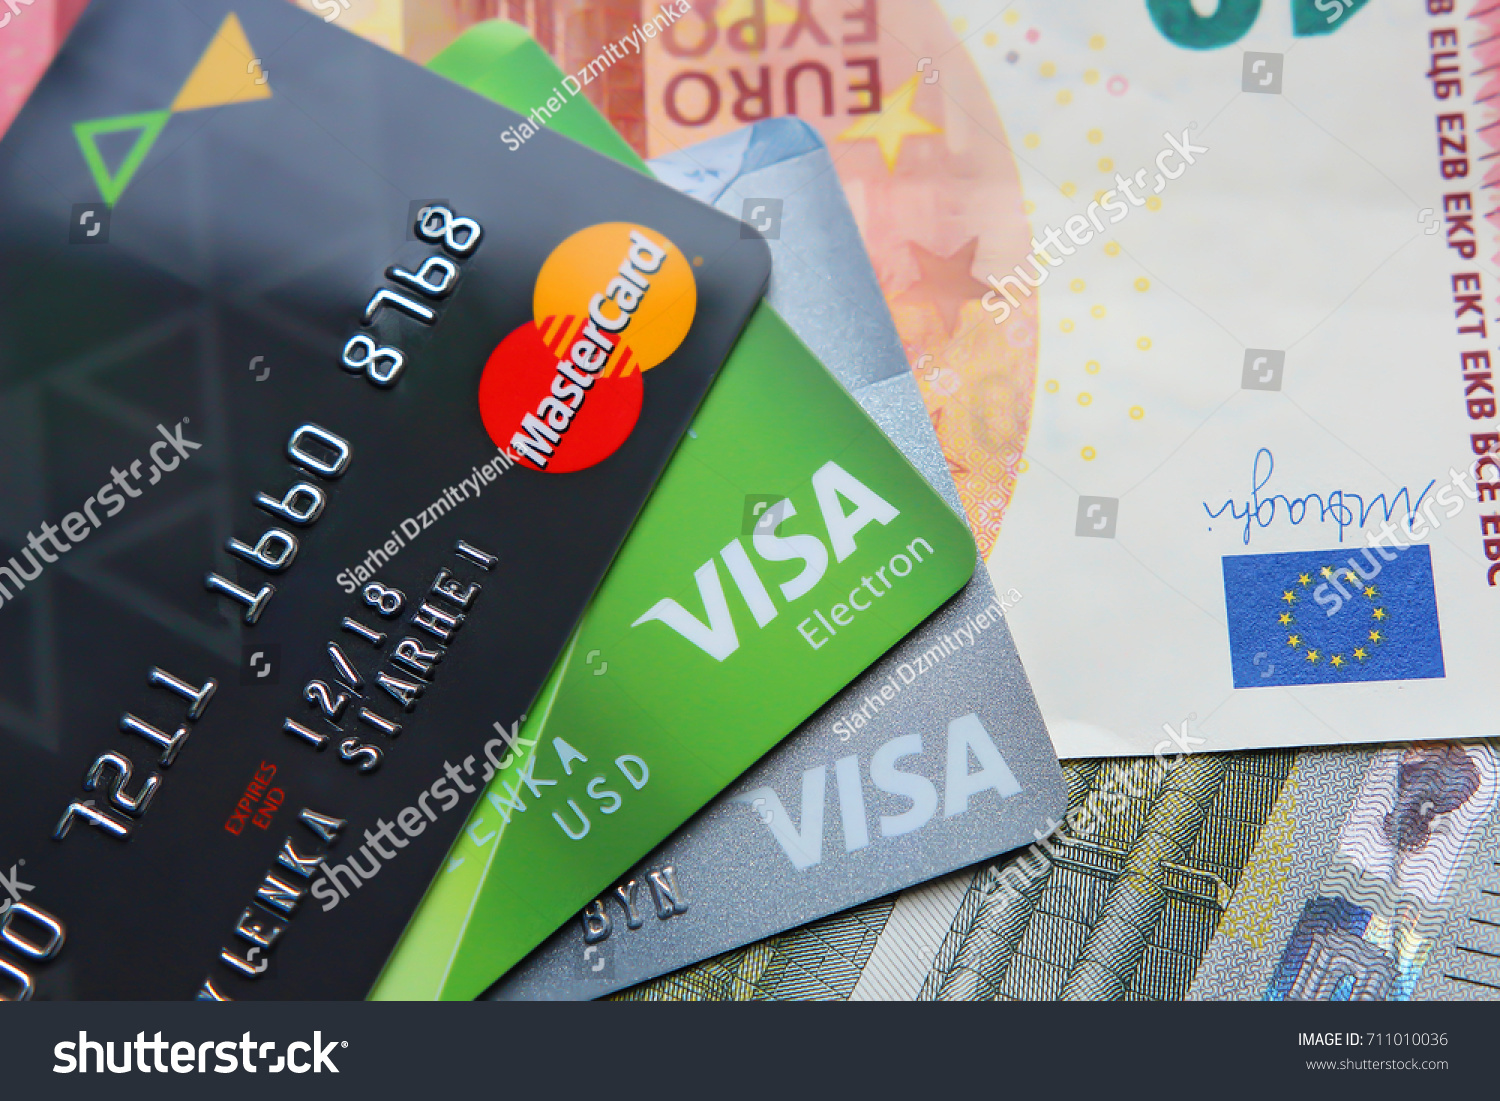 Design Len Berlin berlin germany september 4 2017 bank stock photo 711010036